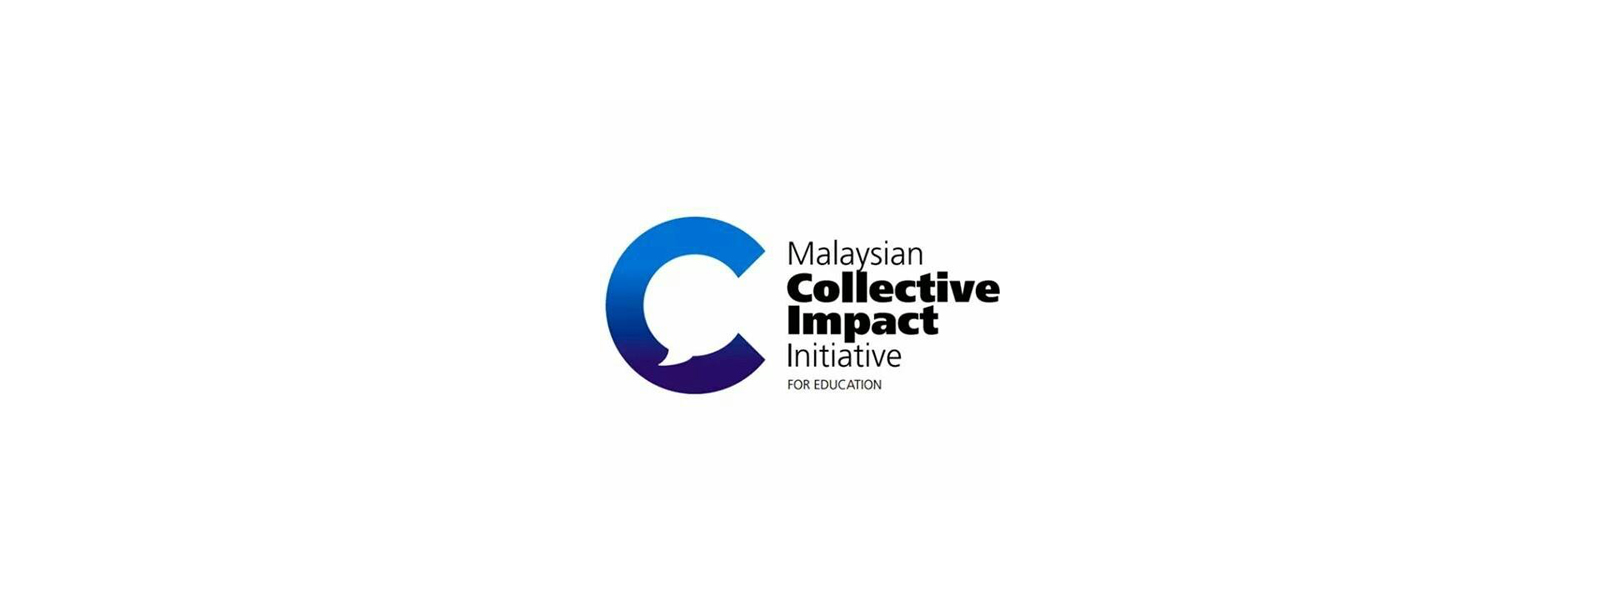 Inner Banner - Malaysia Collective Impact Initiative